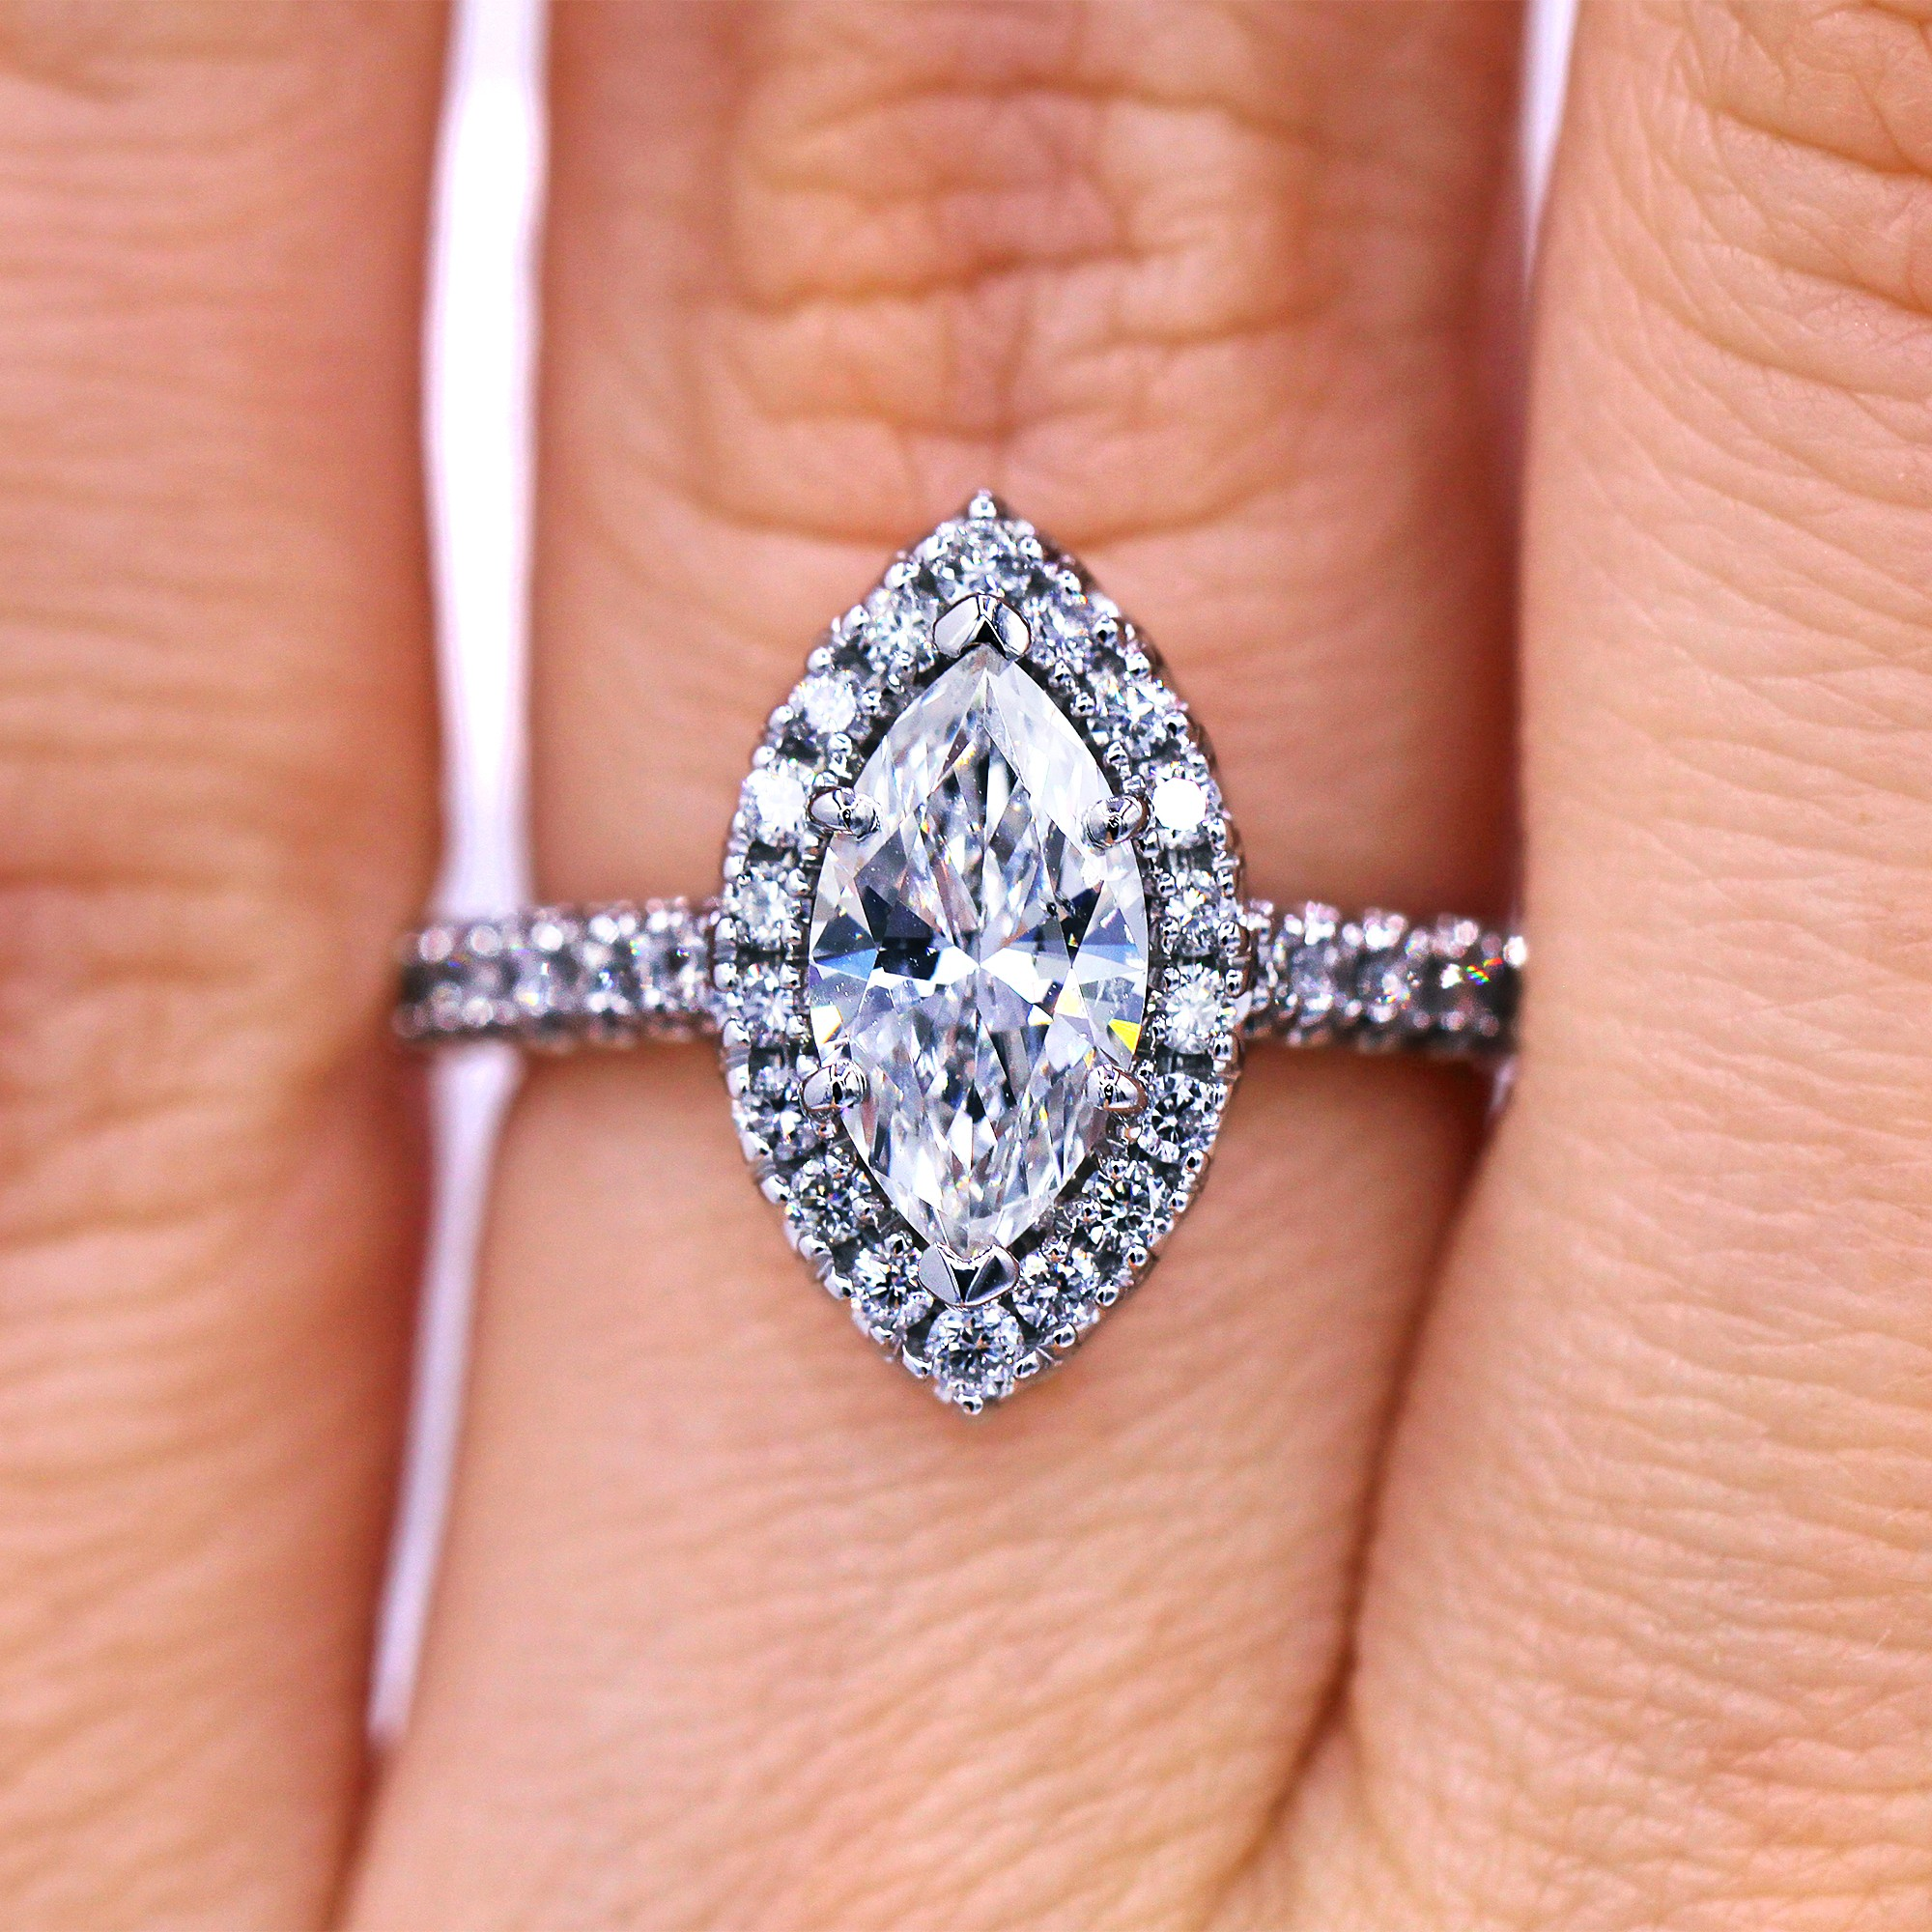 Insanely Gorgeous Halo Marquise Natural Diamond Ring